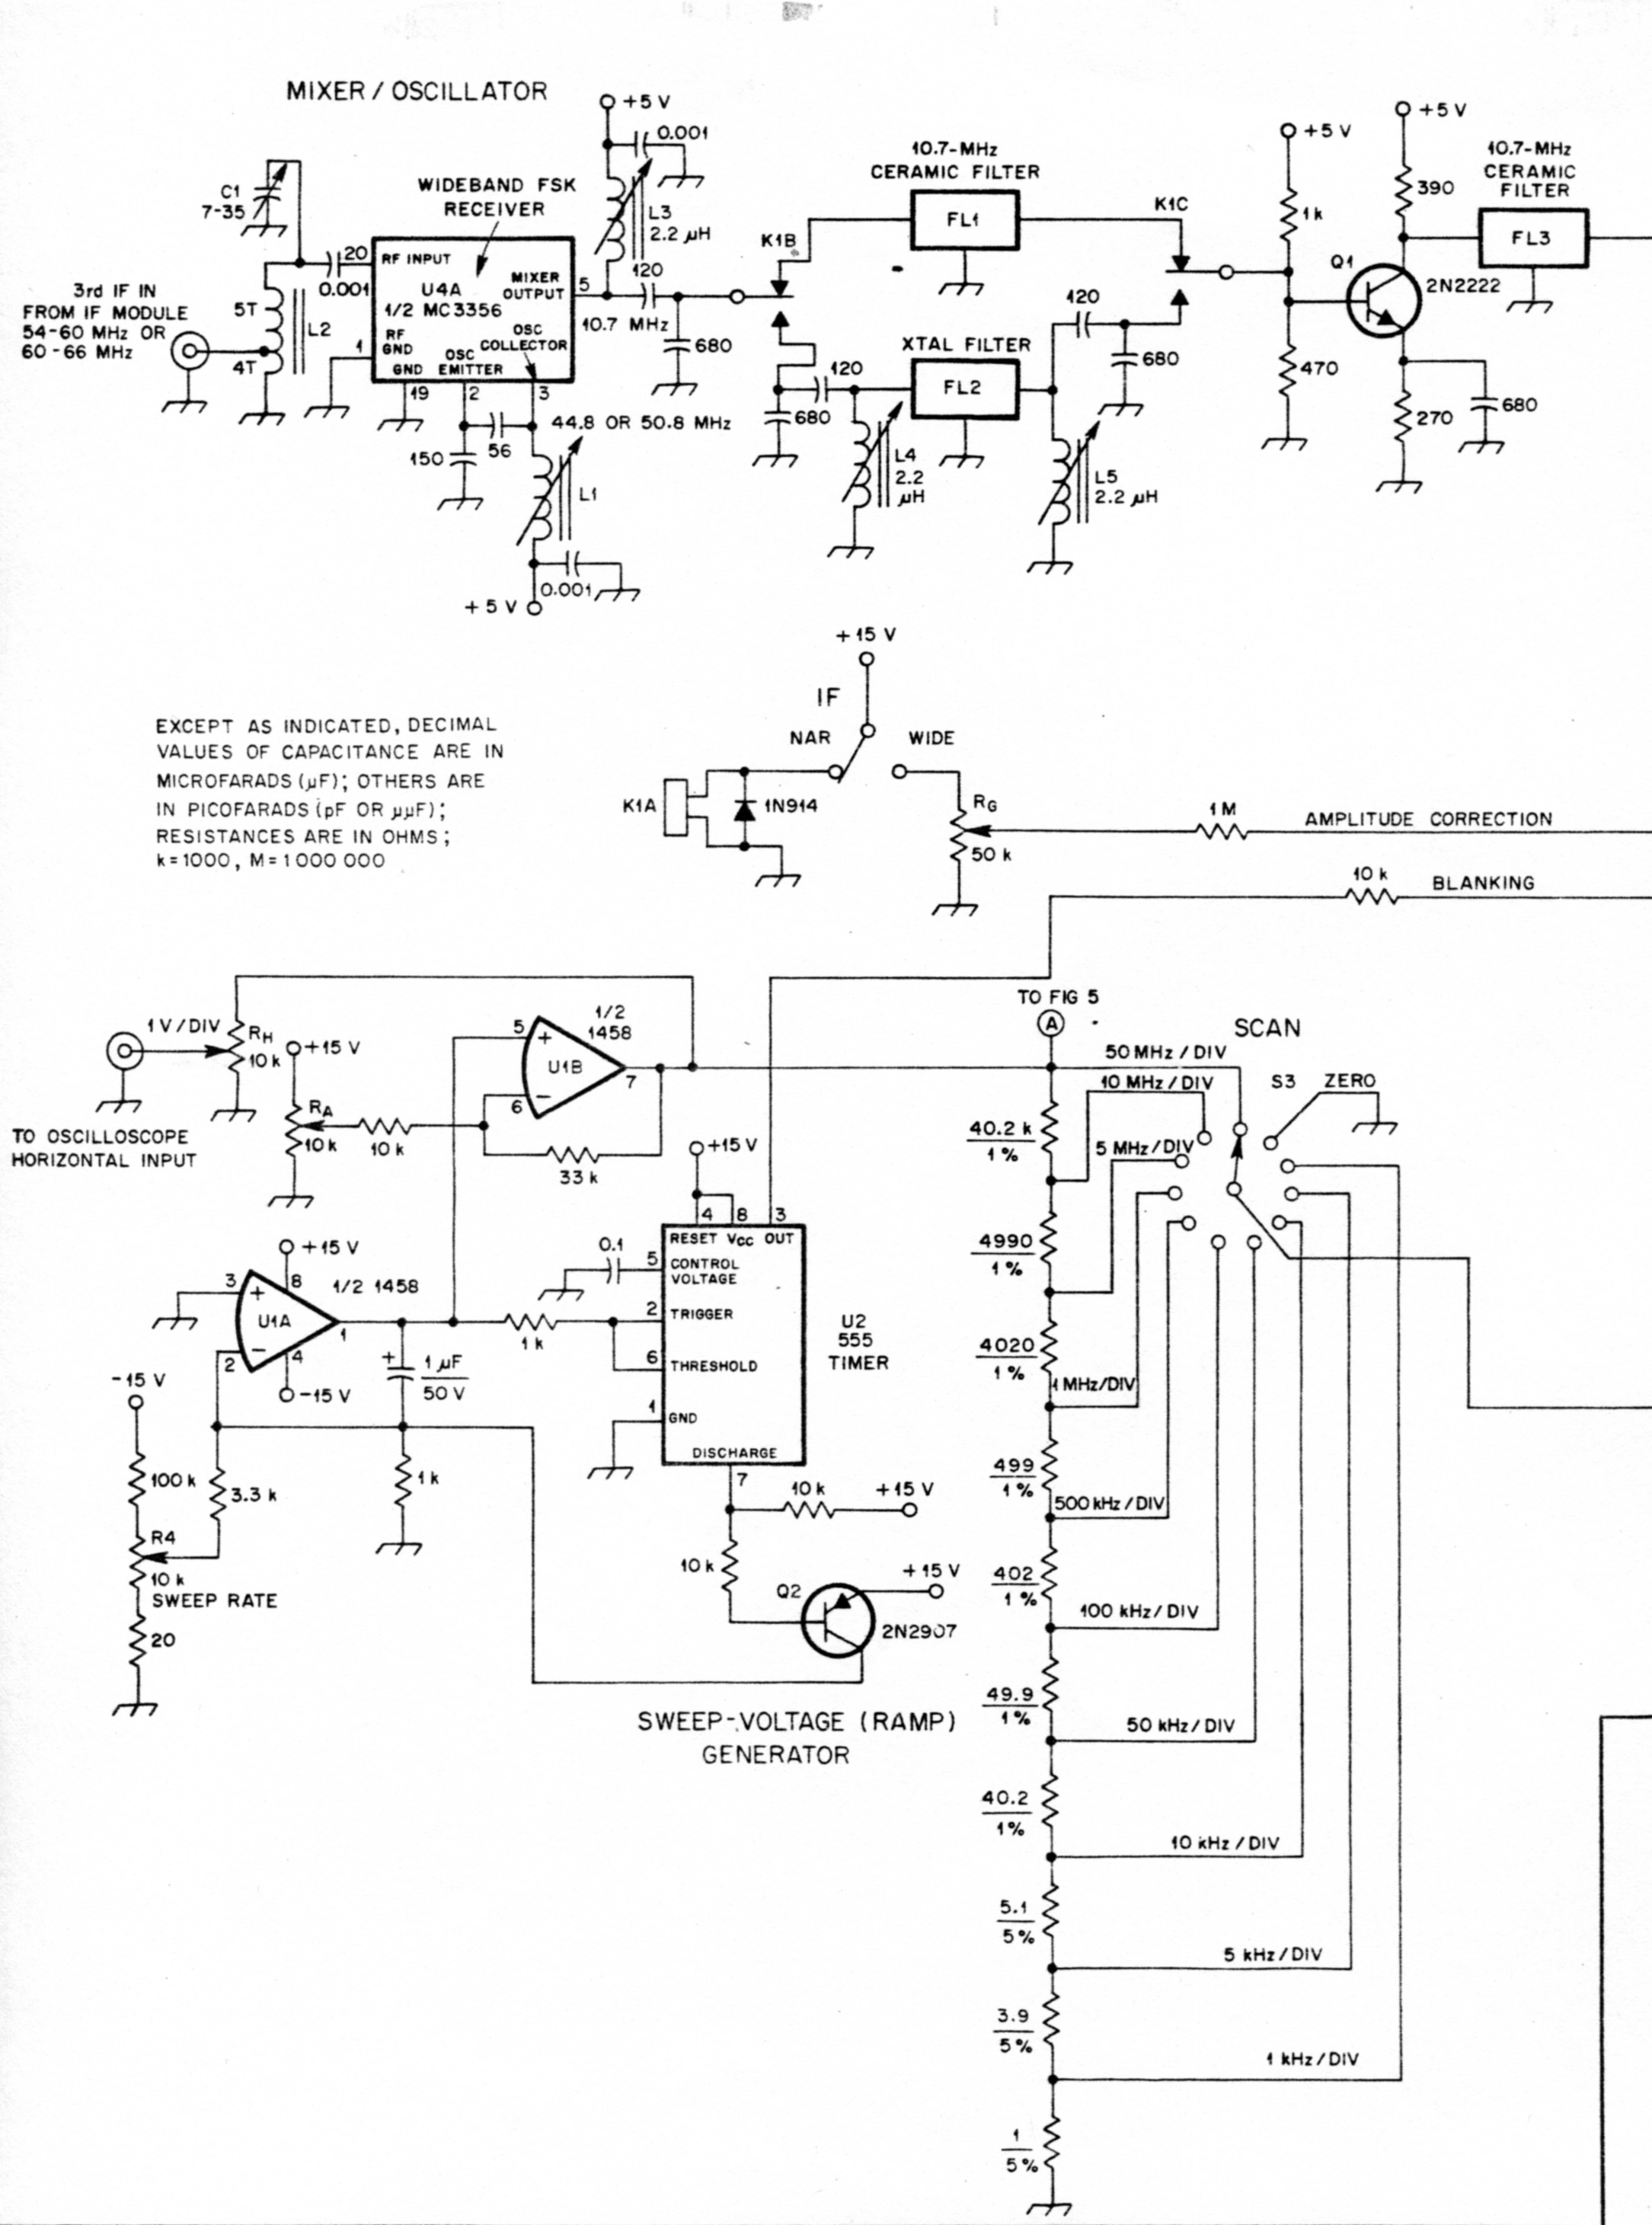 Spectrum Analyzer Schematic Diagram Unlimited Access To Wiring Audio Dspic30f6012 Mcp6022 Electronics Projects An Inexpensive For The Radio Amateur Rh Robkalmeijer Nl Arduino